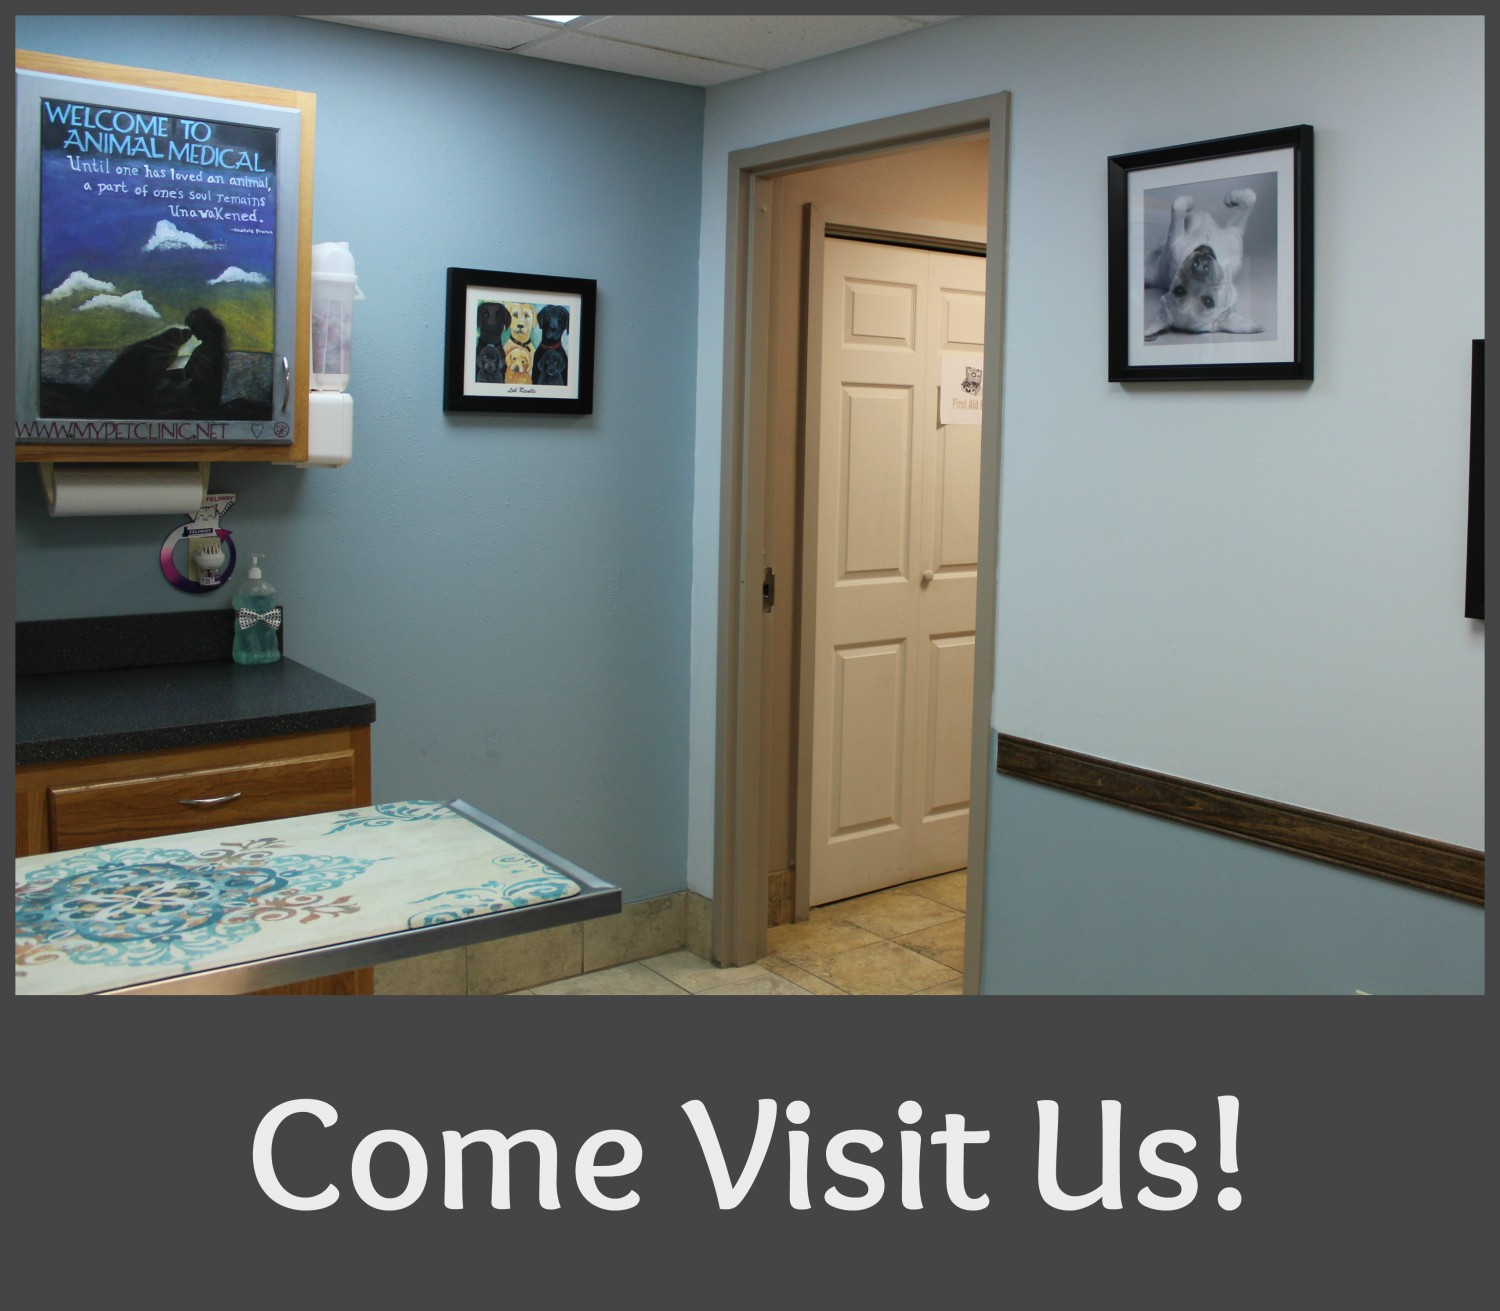 Animal Medical of Chesapeake Veterinary Hospital, 921 Battlefield Blvd, Chesapeake, Va 23320 welcomes you to visit us and leave a Review